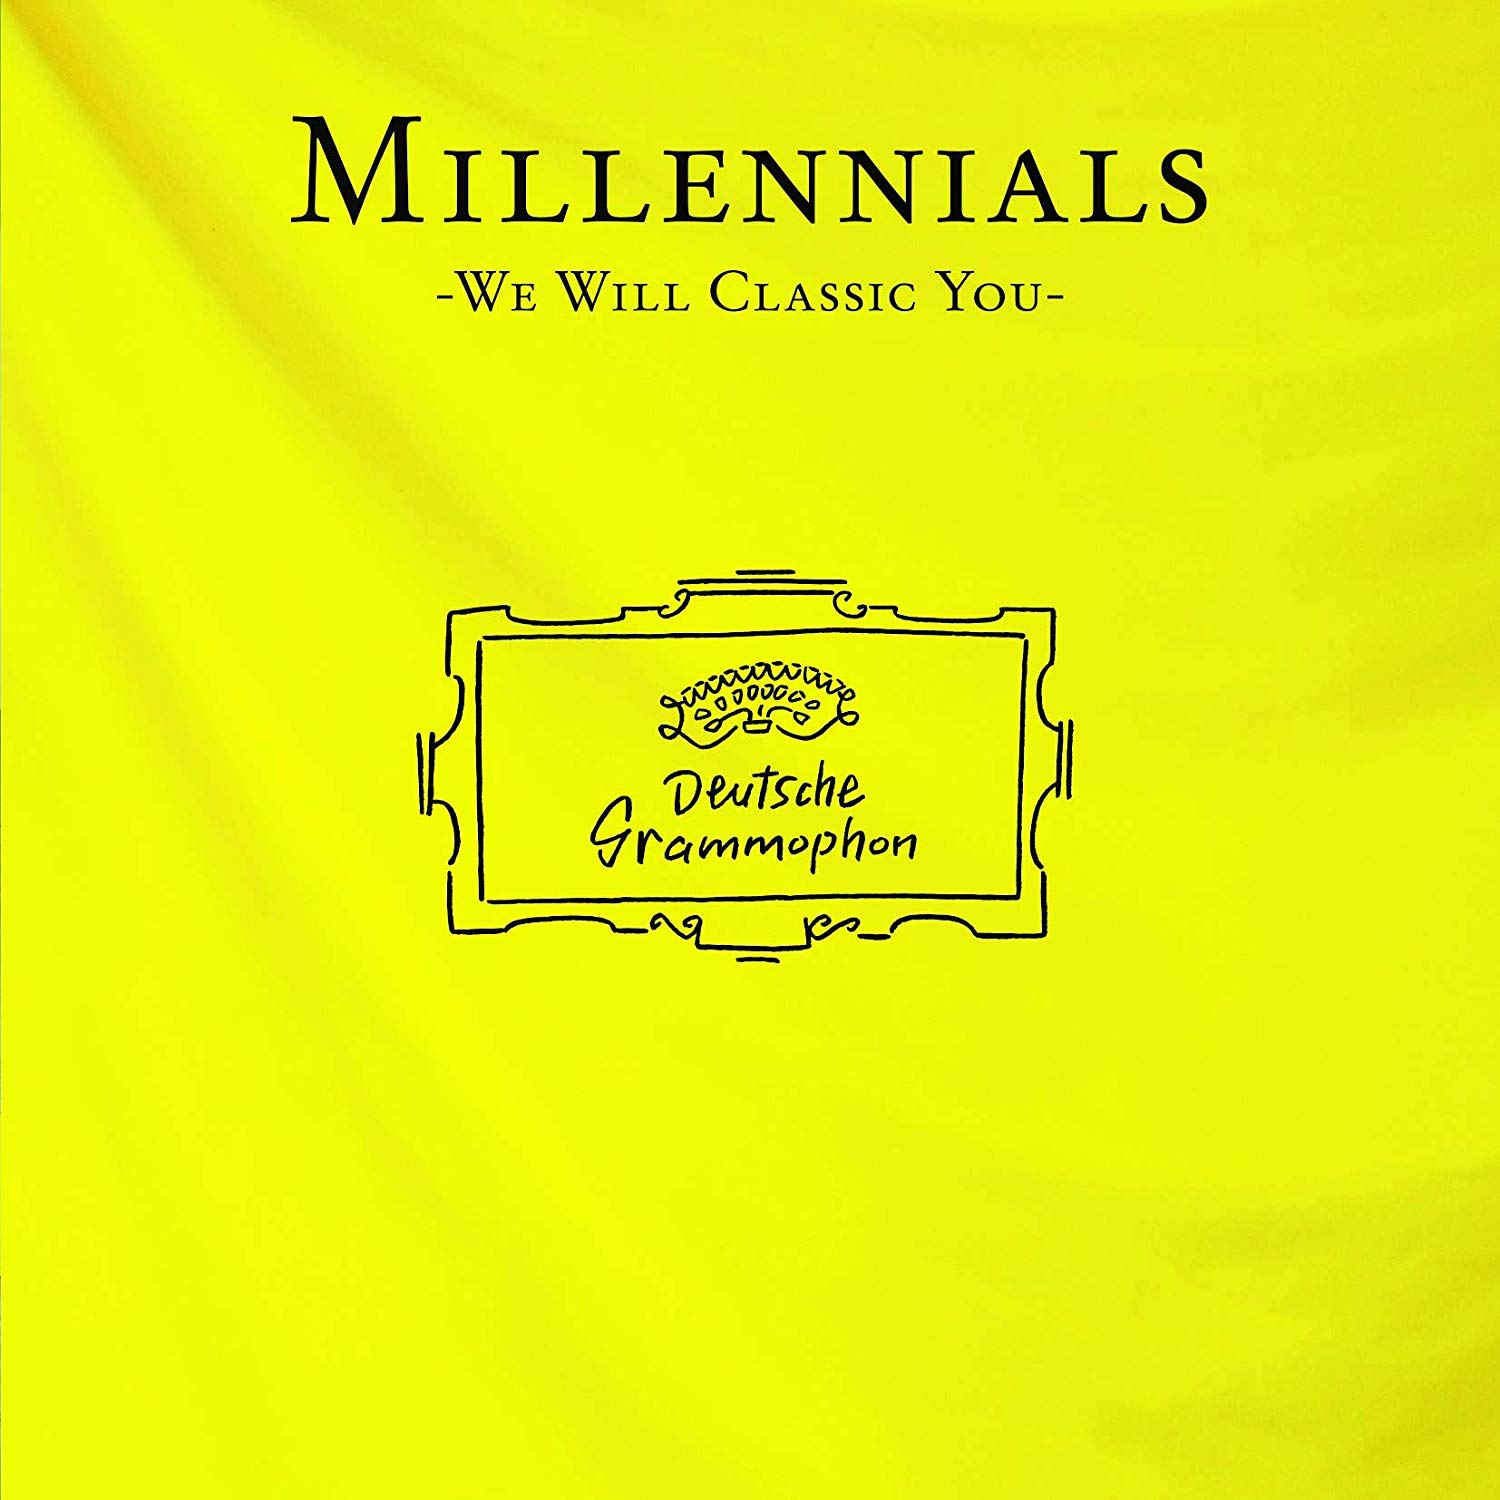 MILLENNIALS -WE WILL CLASSIC YOU-